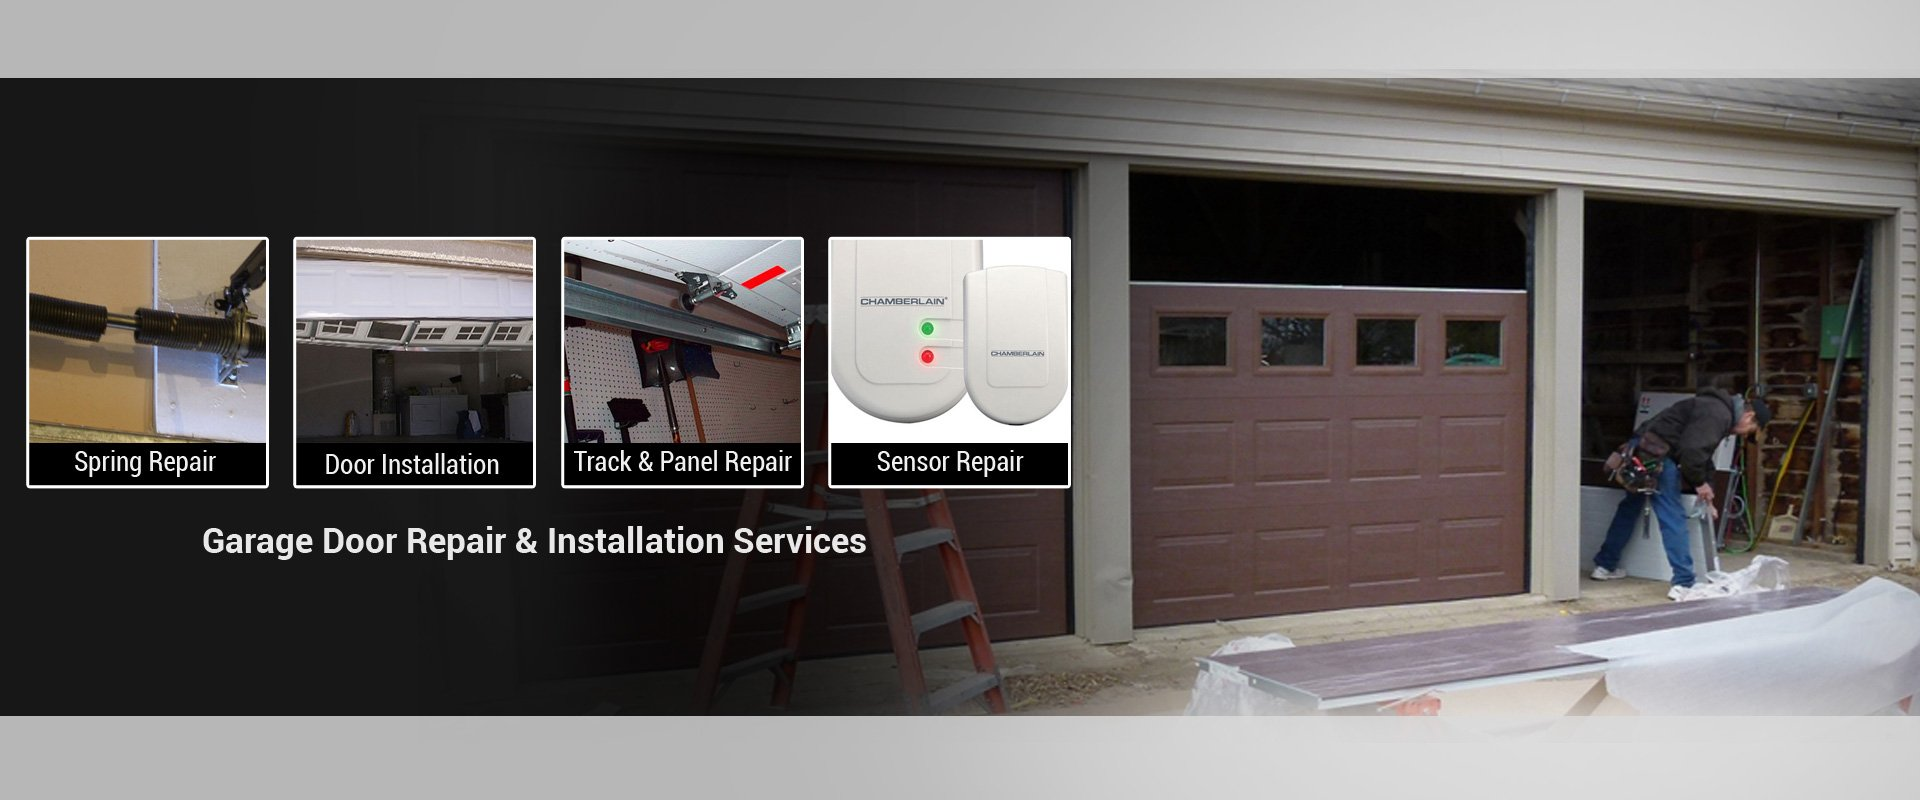 Rapid Garage Door Repair Ventura